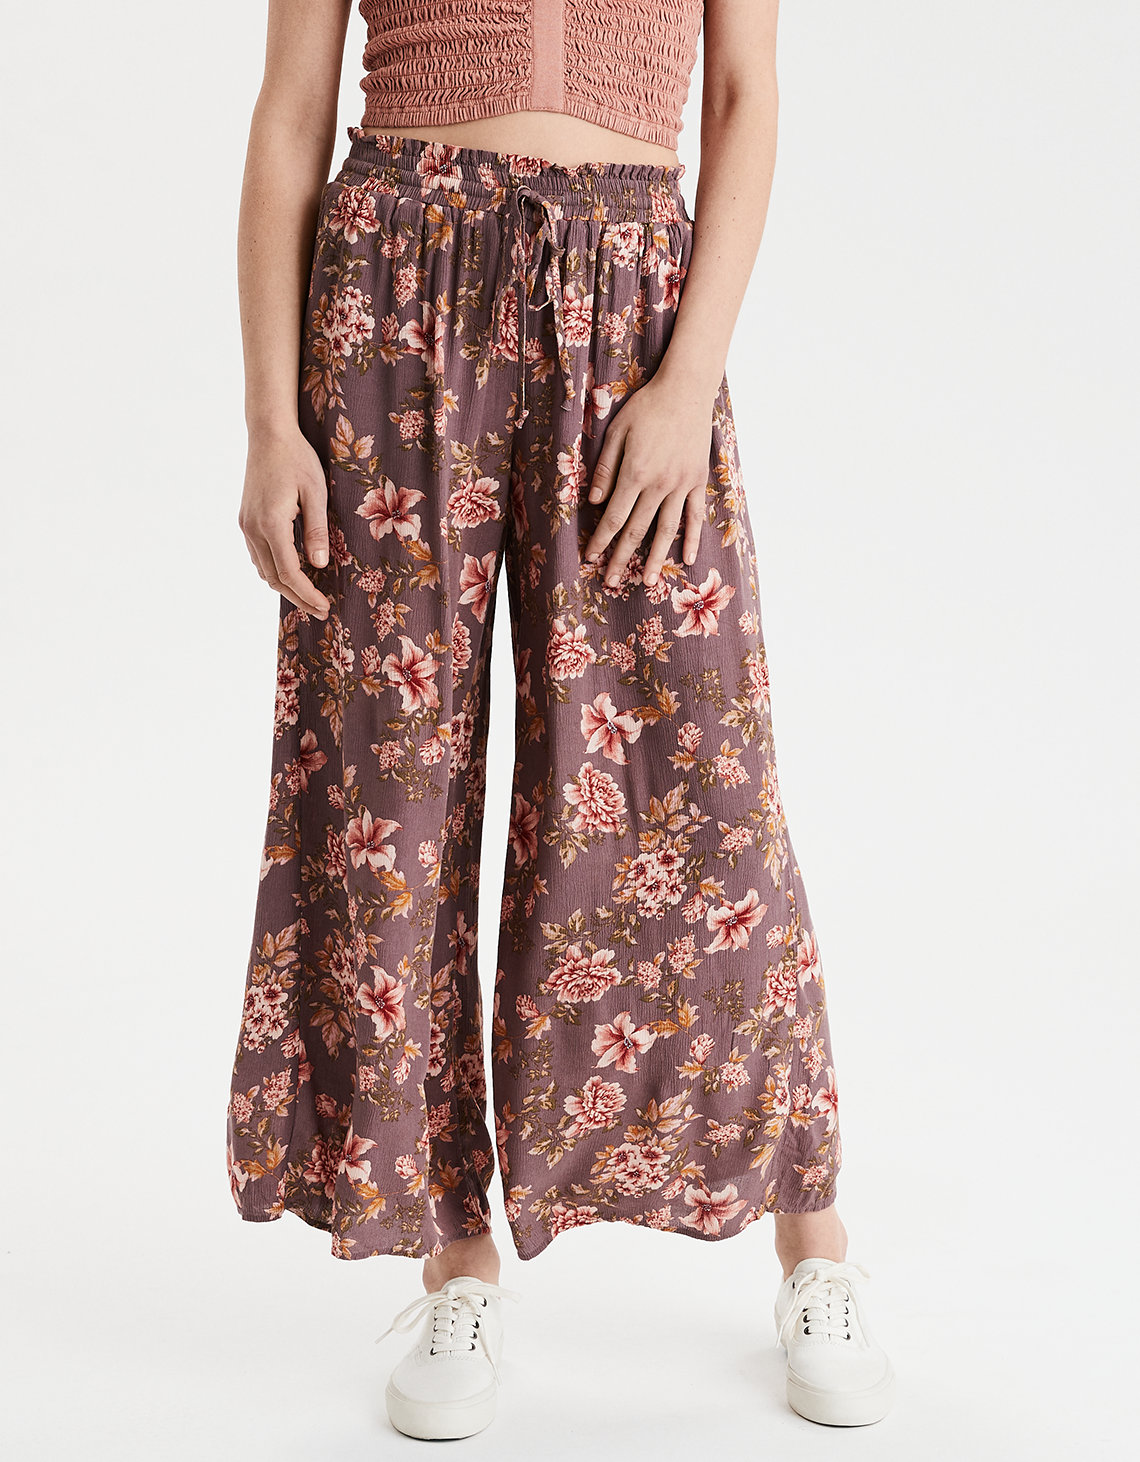 AE High-Waisted Floral Palazzo Pant